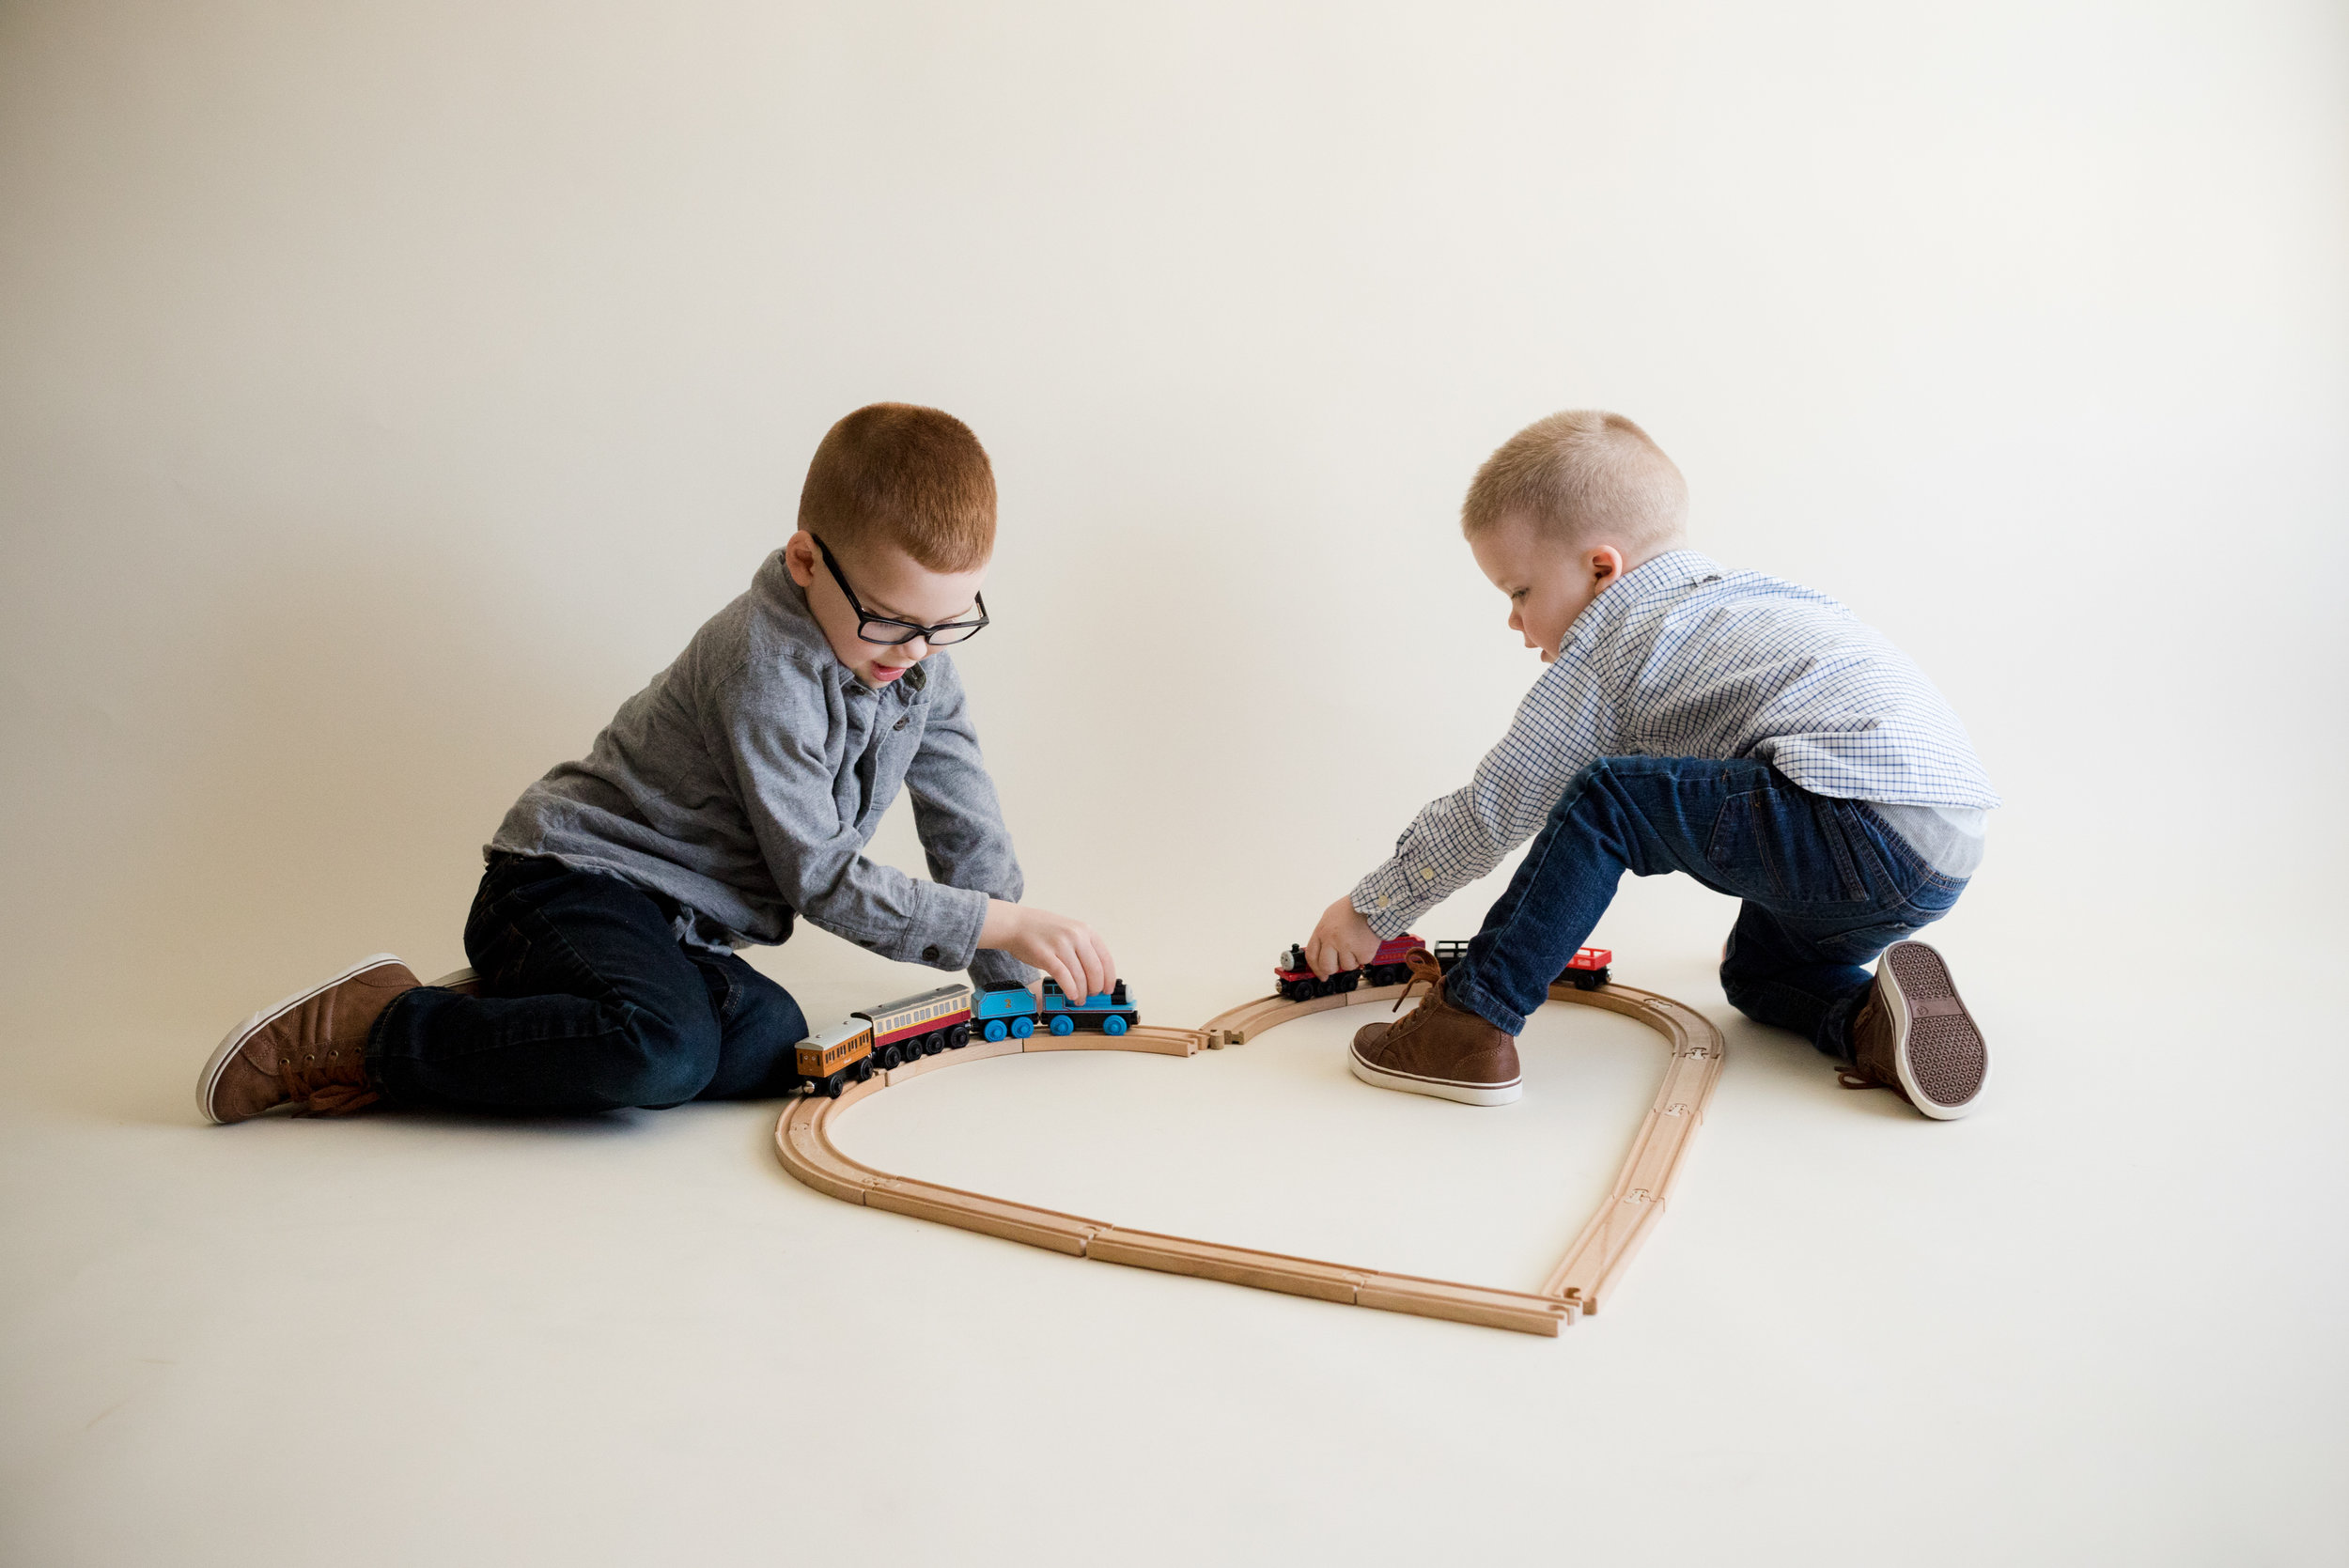 Two boy children playing with toy trains during indoor photo session in Cedar Rapids, Iowa.